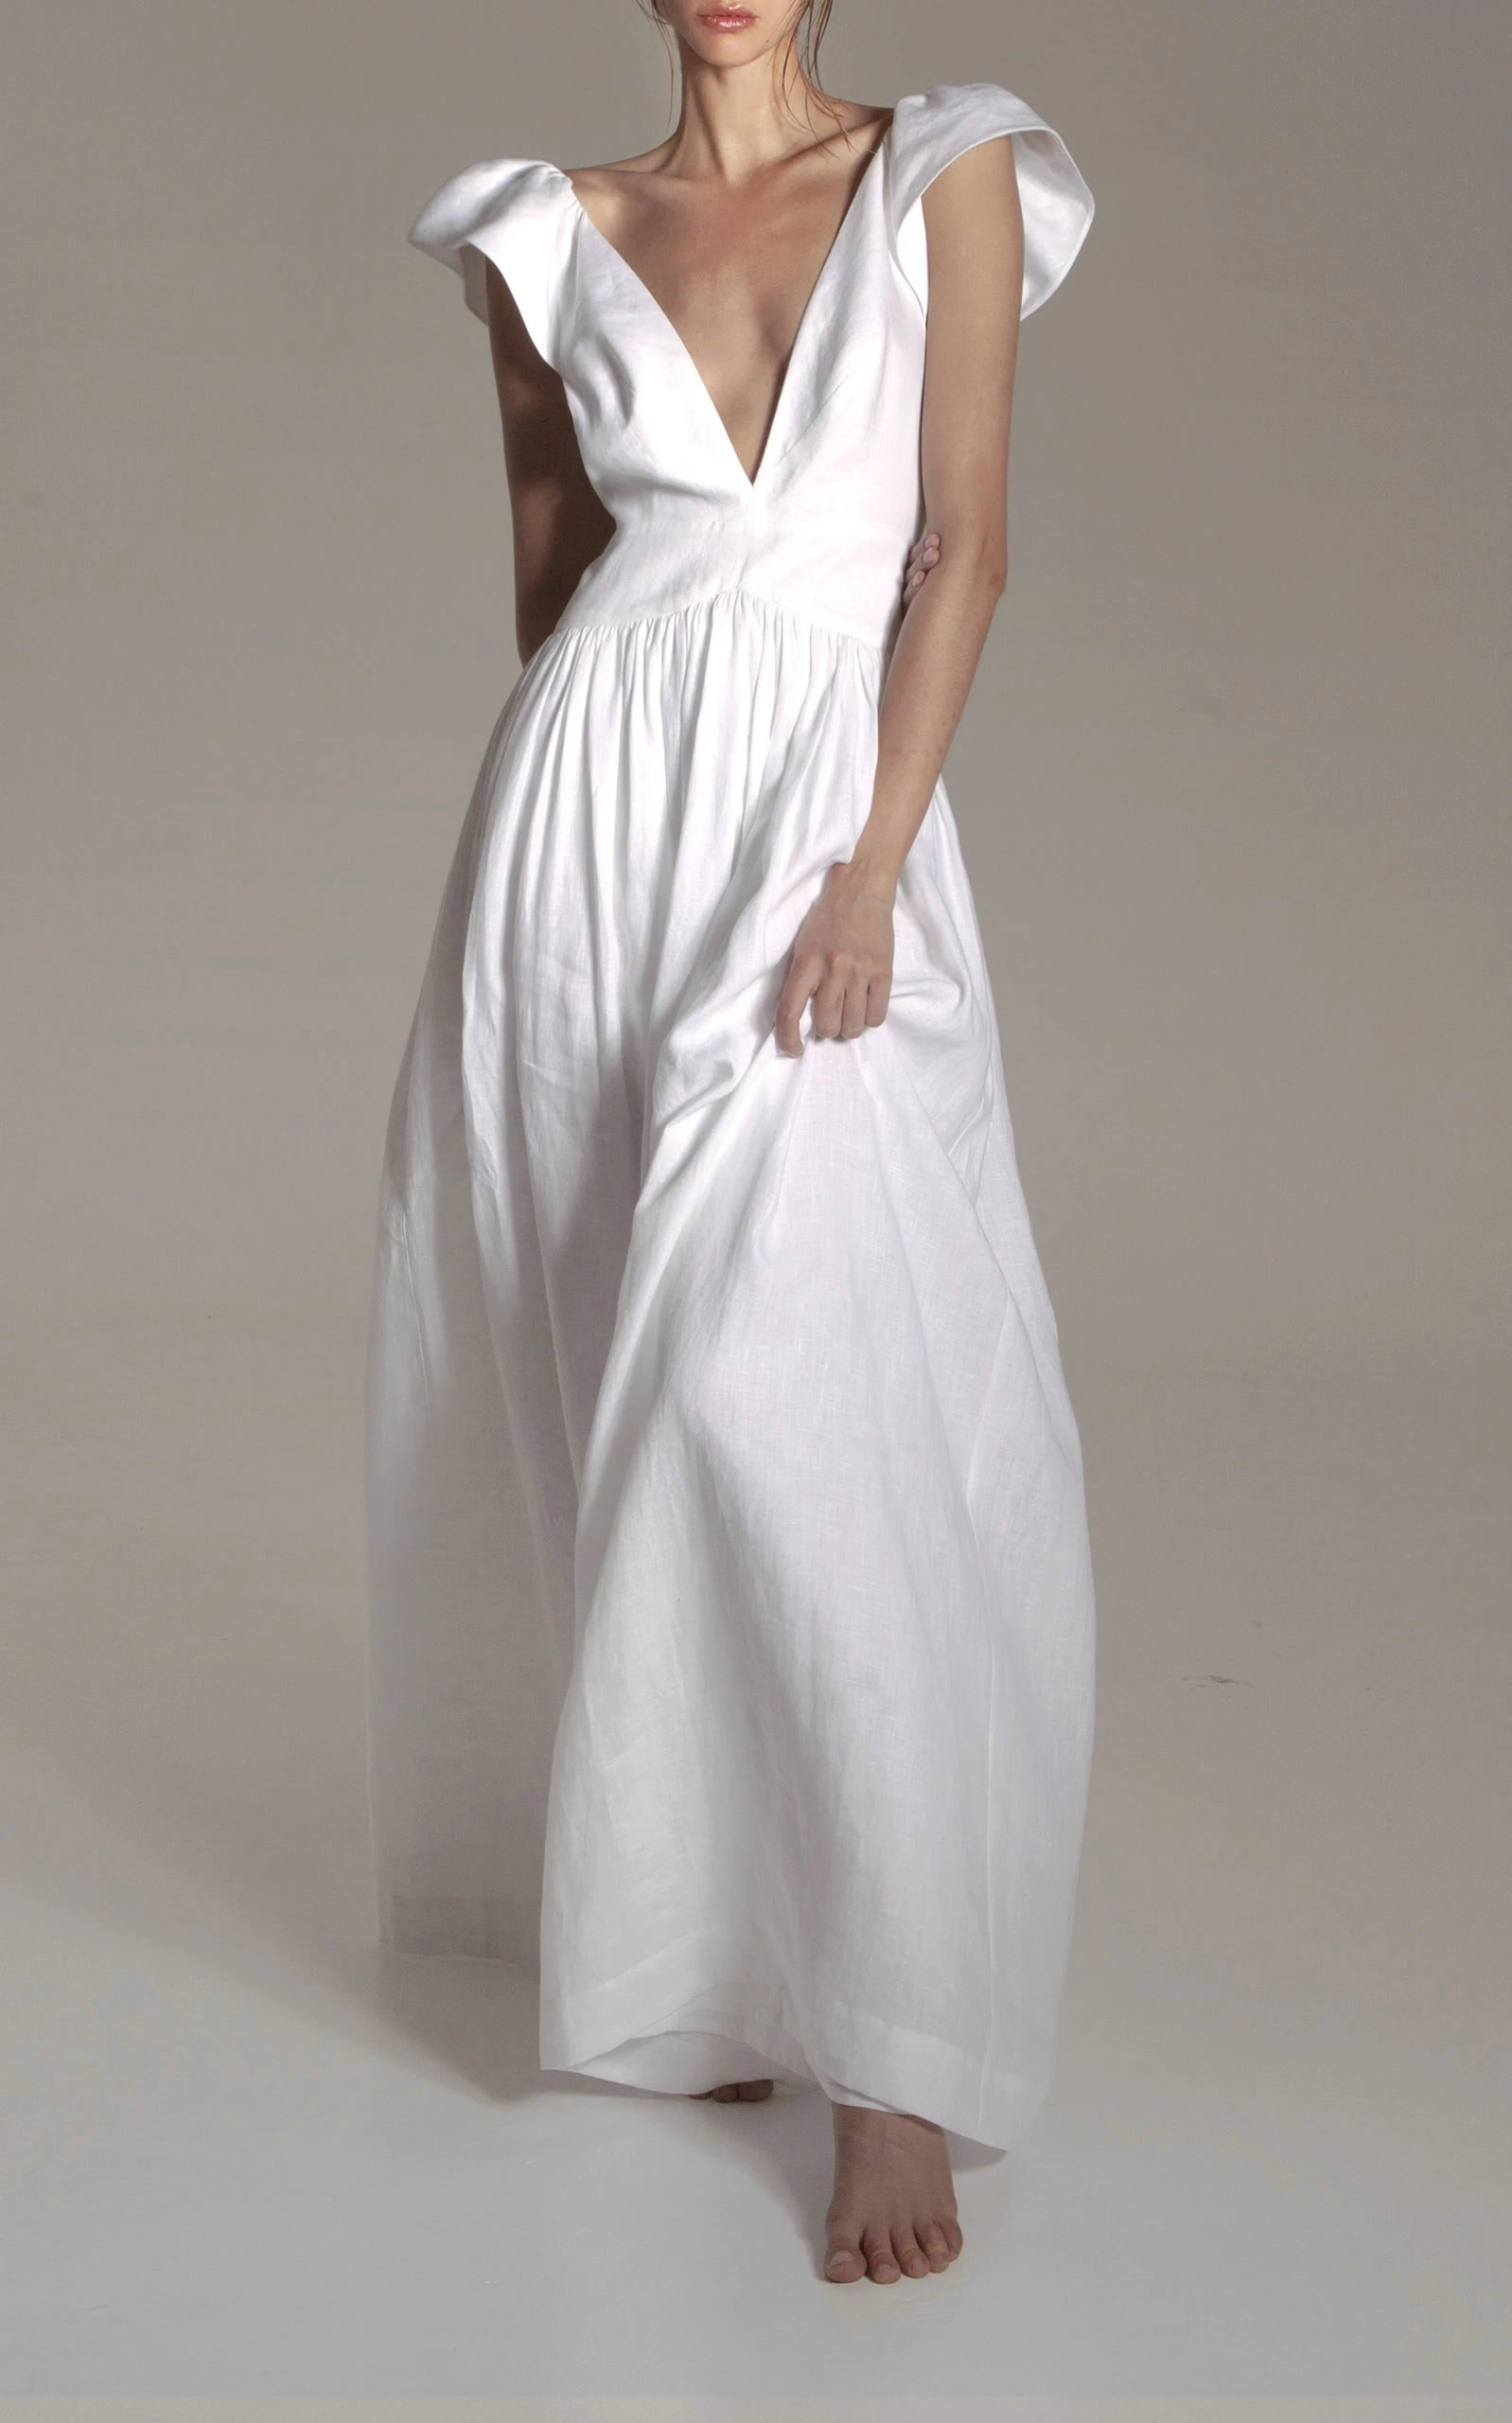 Kalita - Destination Wear - White Persephone Linen Day Dress